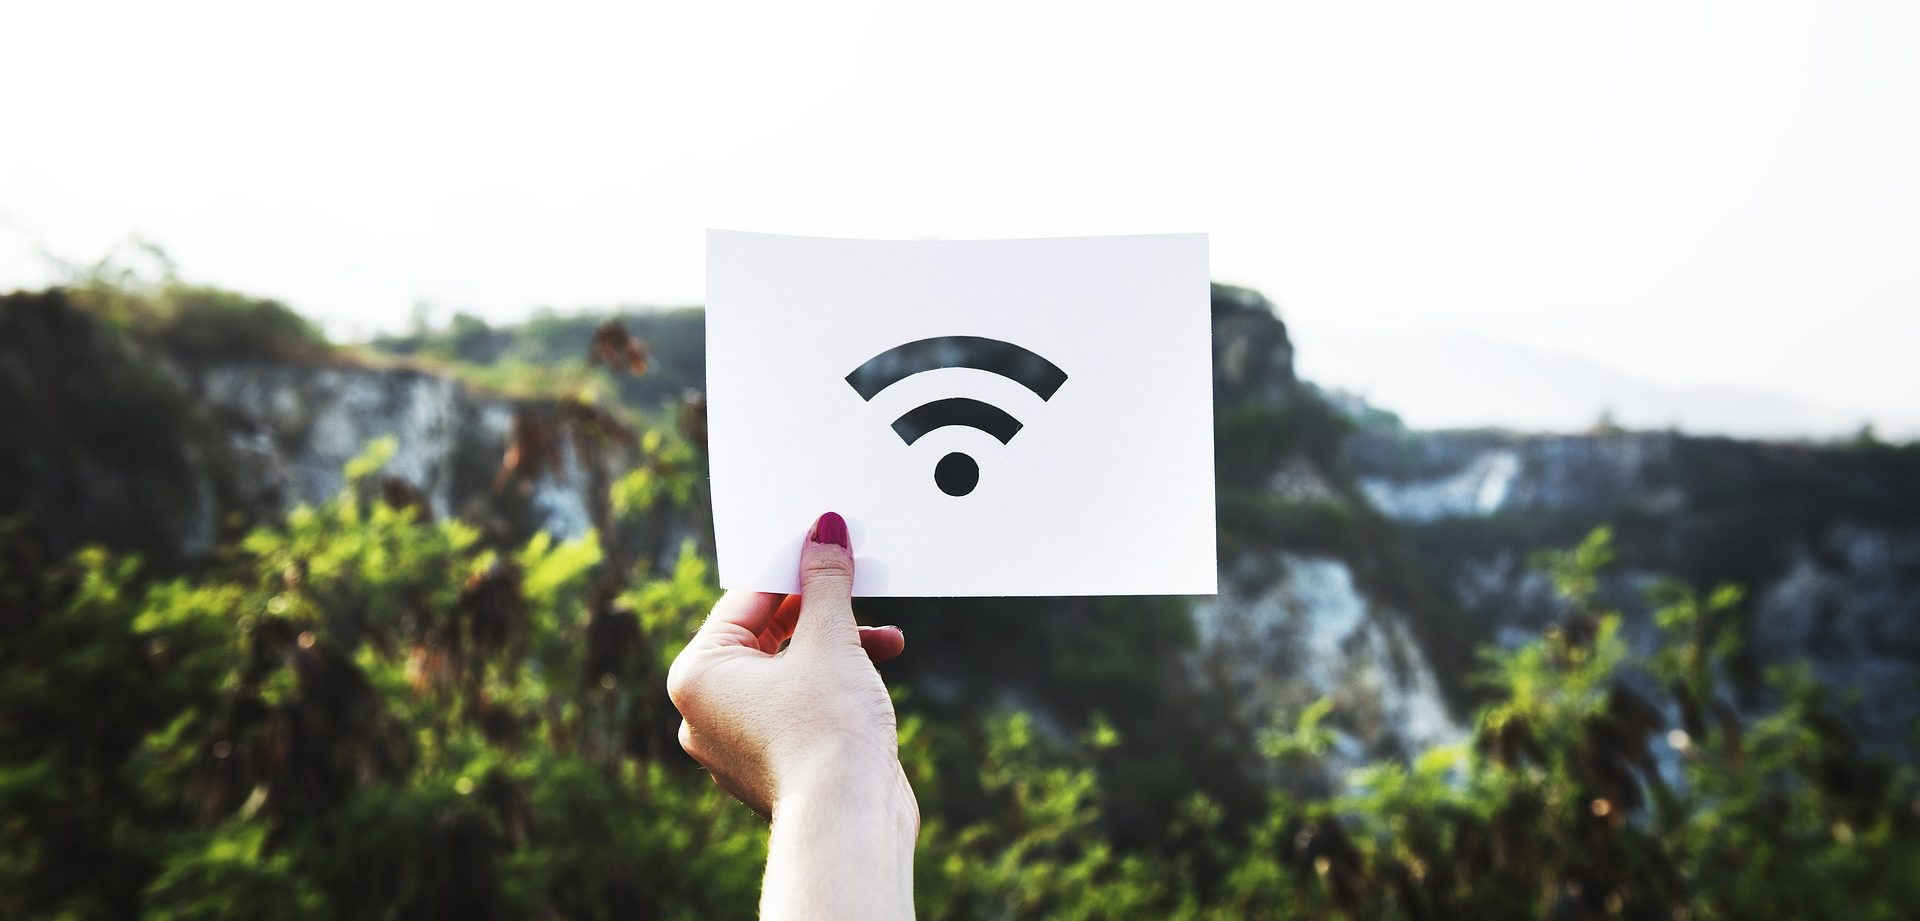 We can set up a wireless network for any business or location!